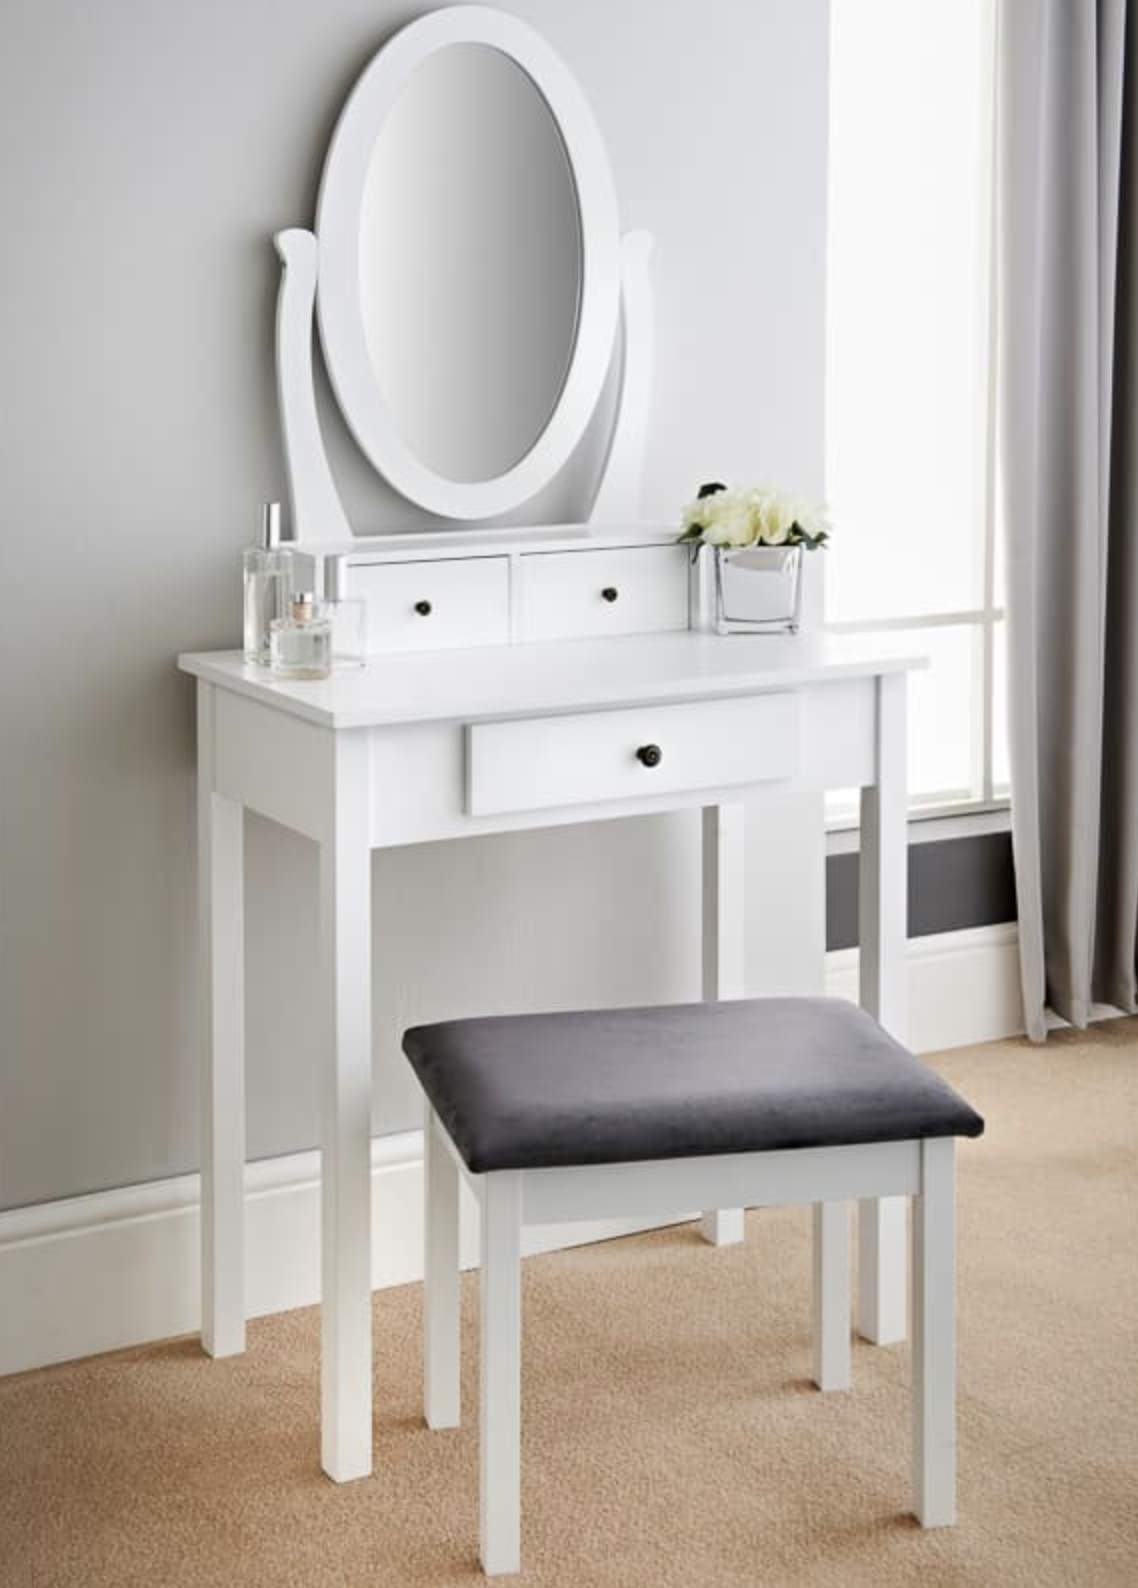 b&m stores furniture vanity table